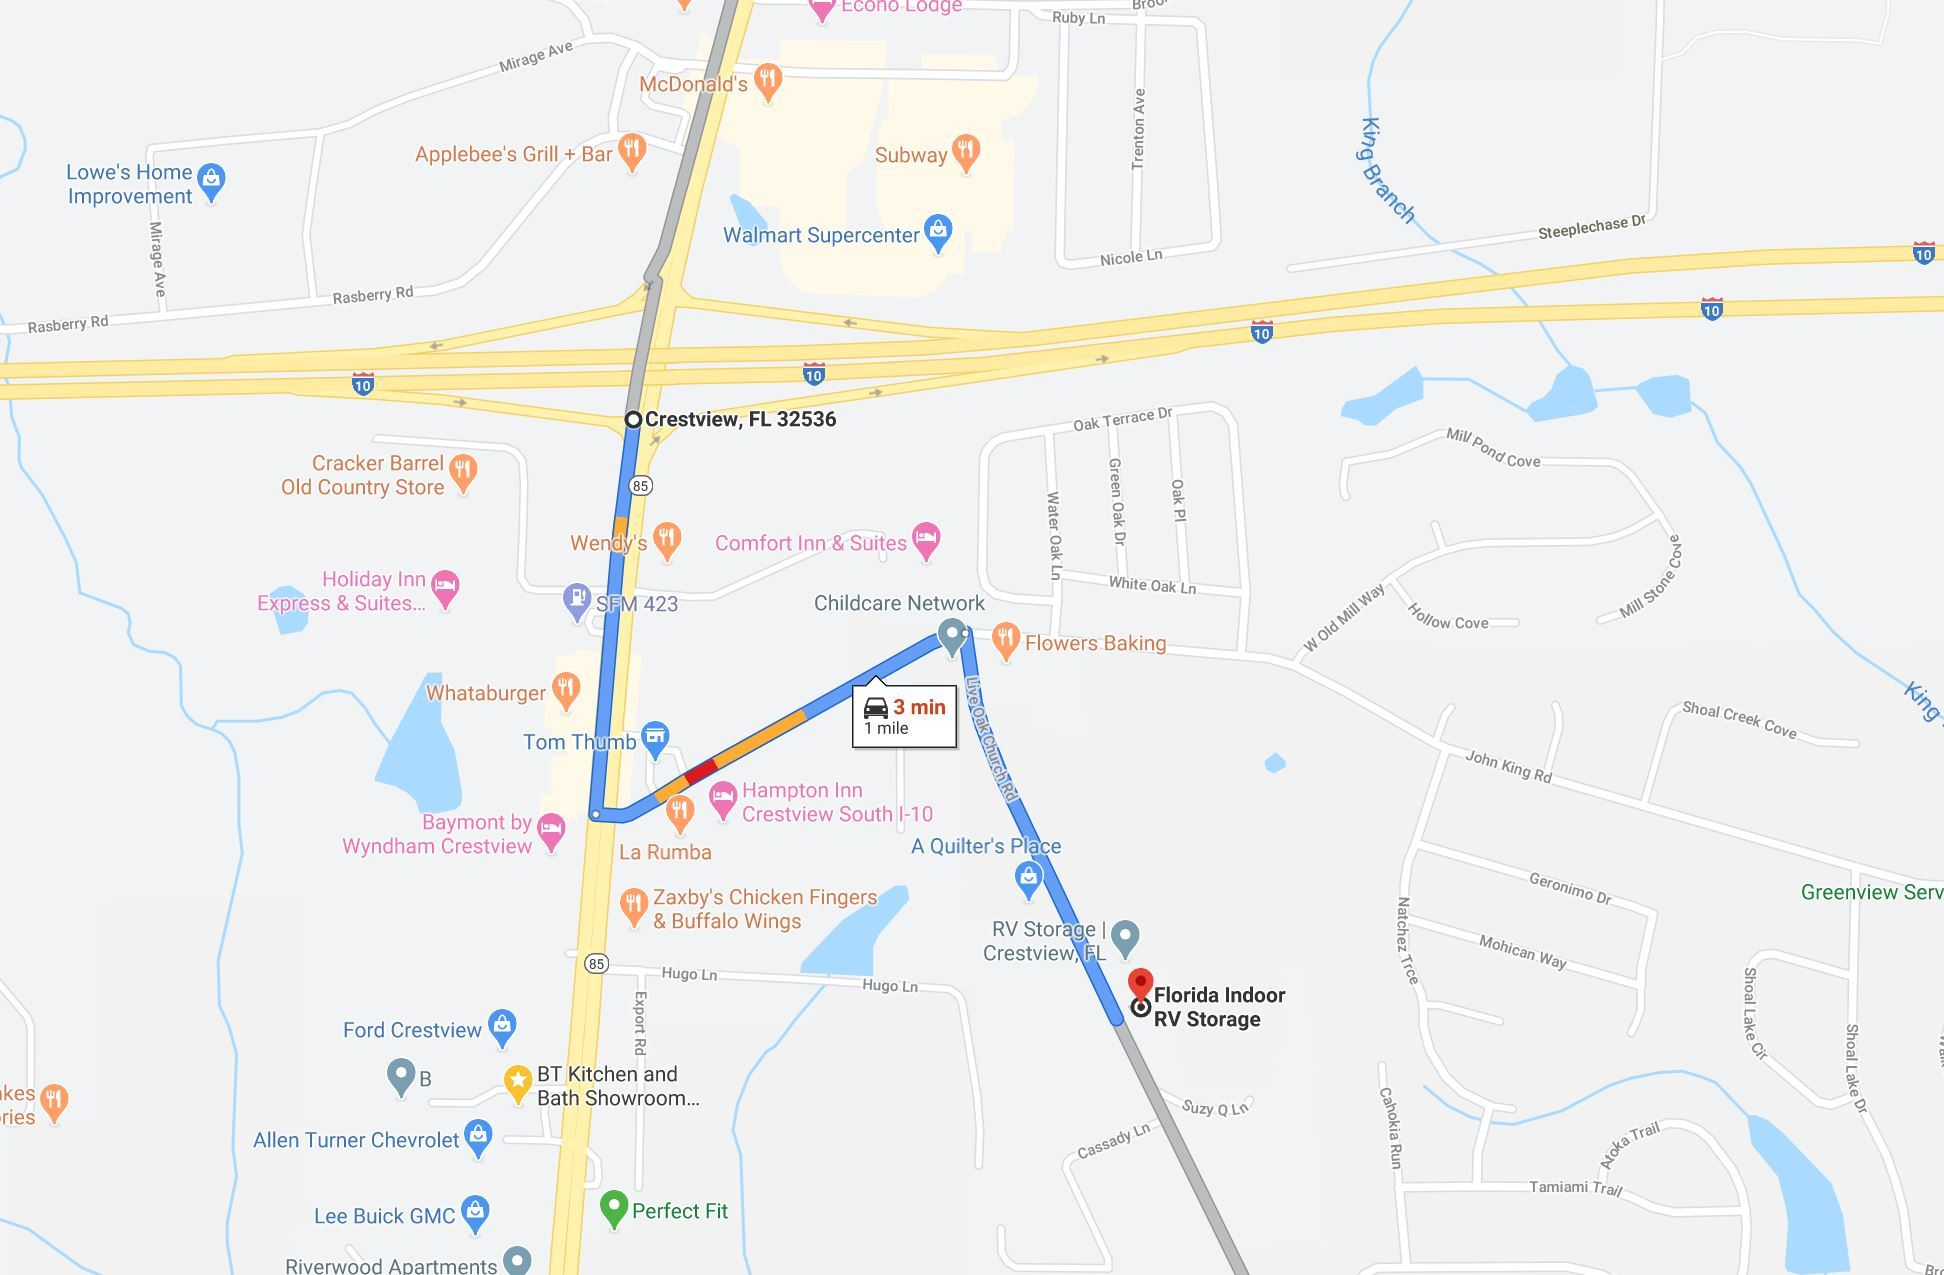 Florida Indoor RV Storage is located one mile south of I10